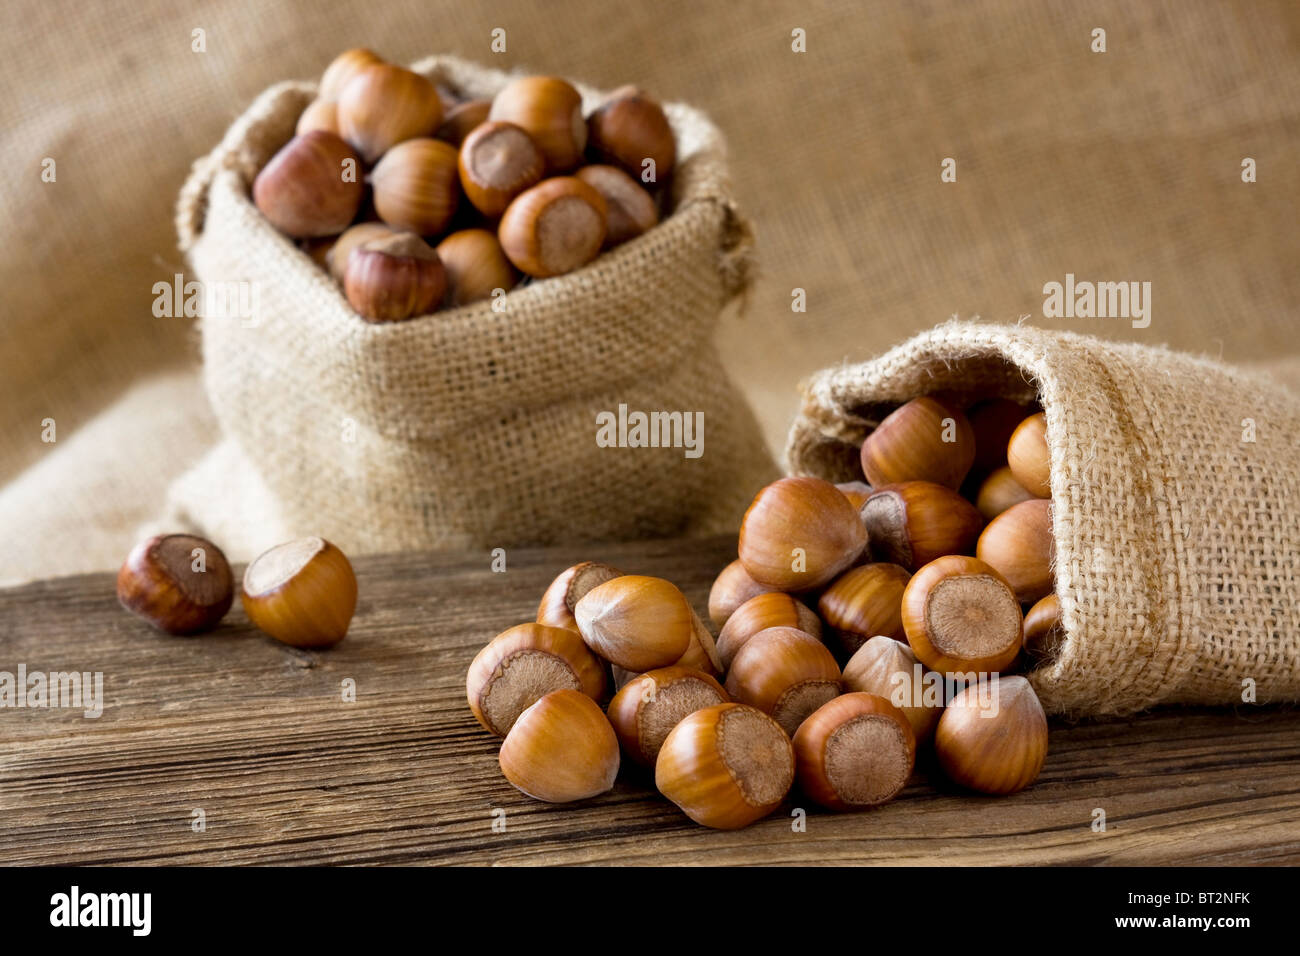 Ripe hazelnuts in a bags - Stock Image